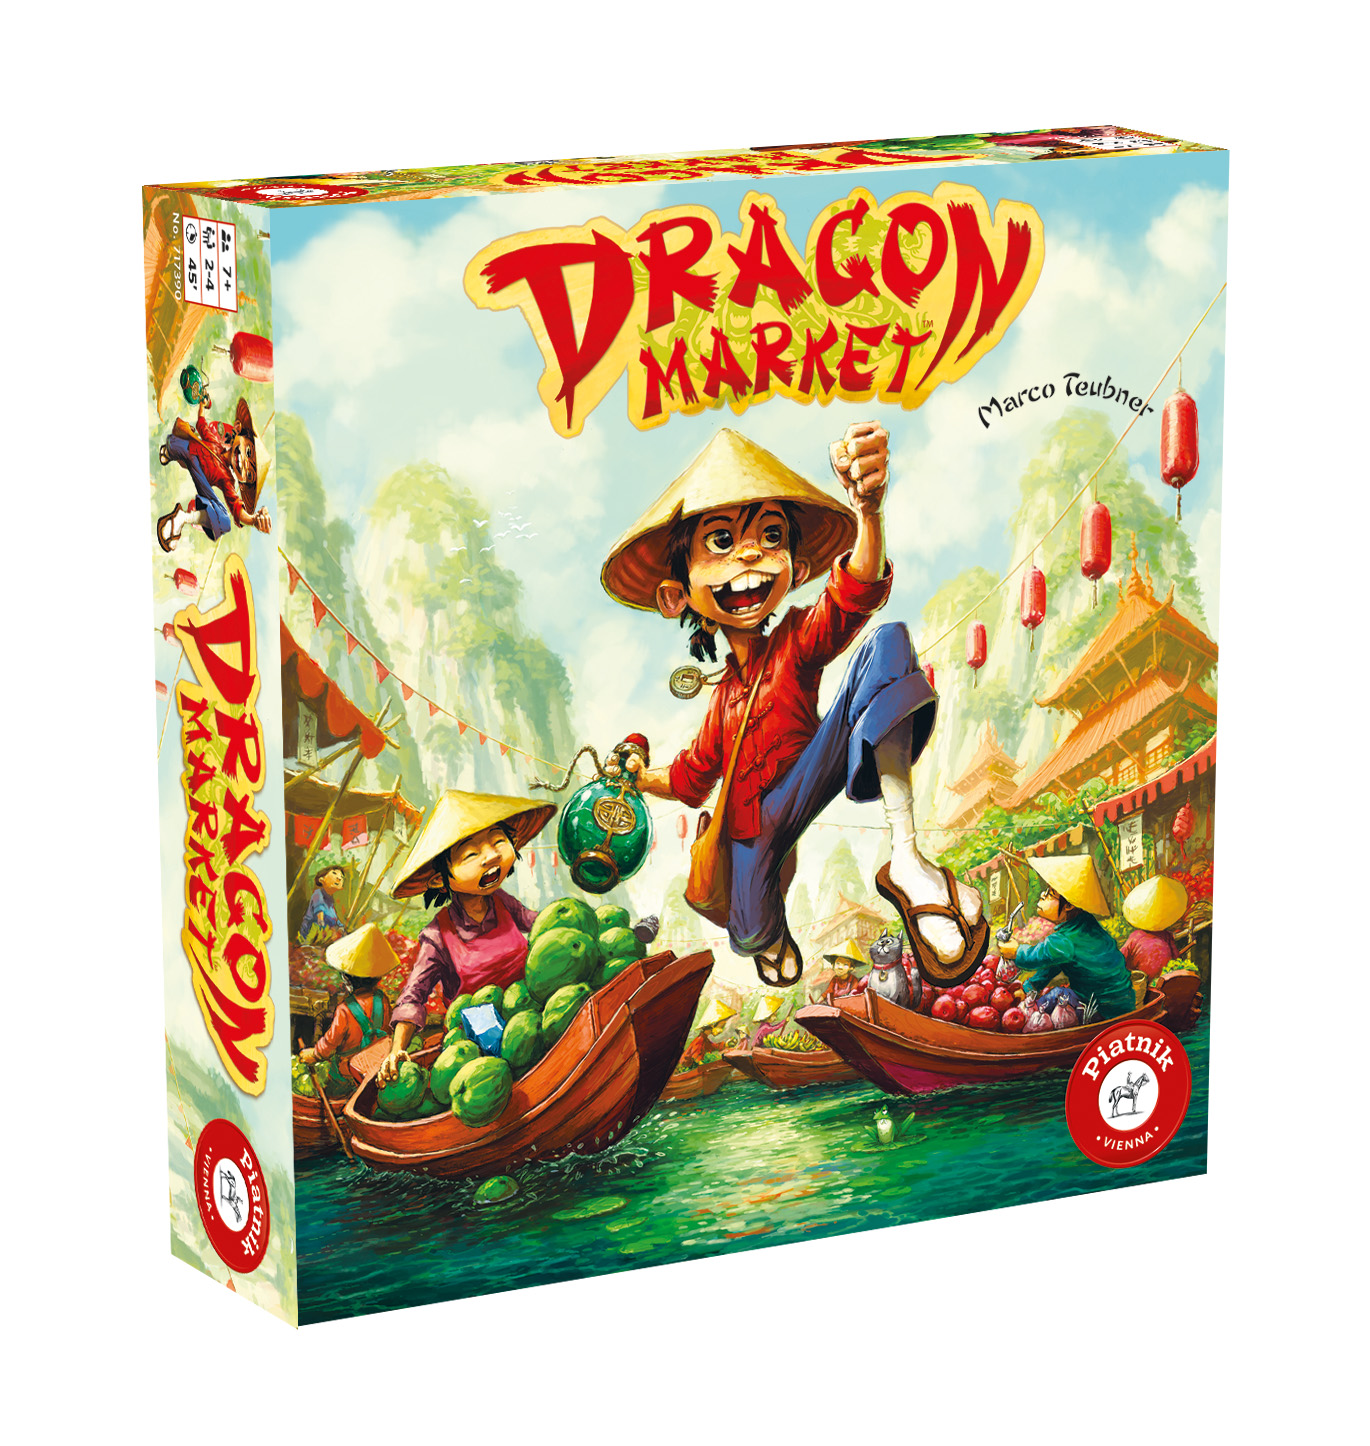 Dragon Market Box